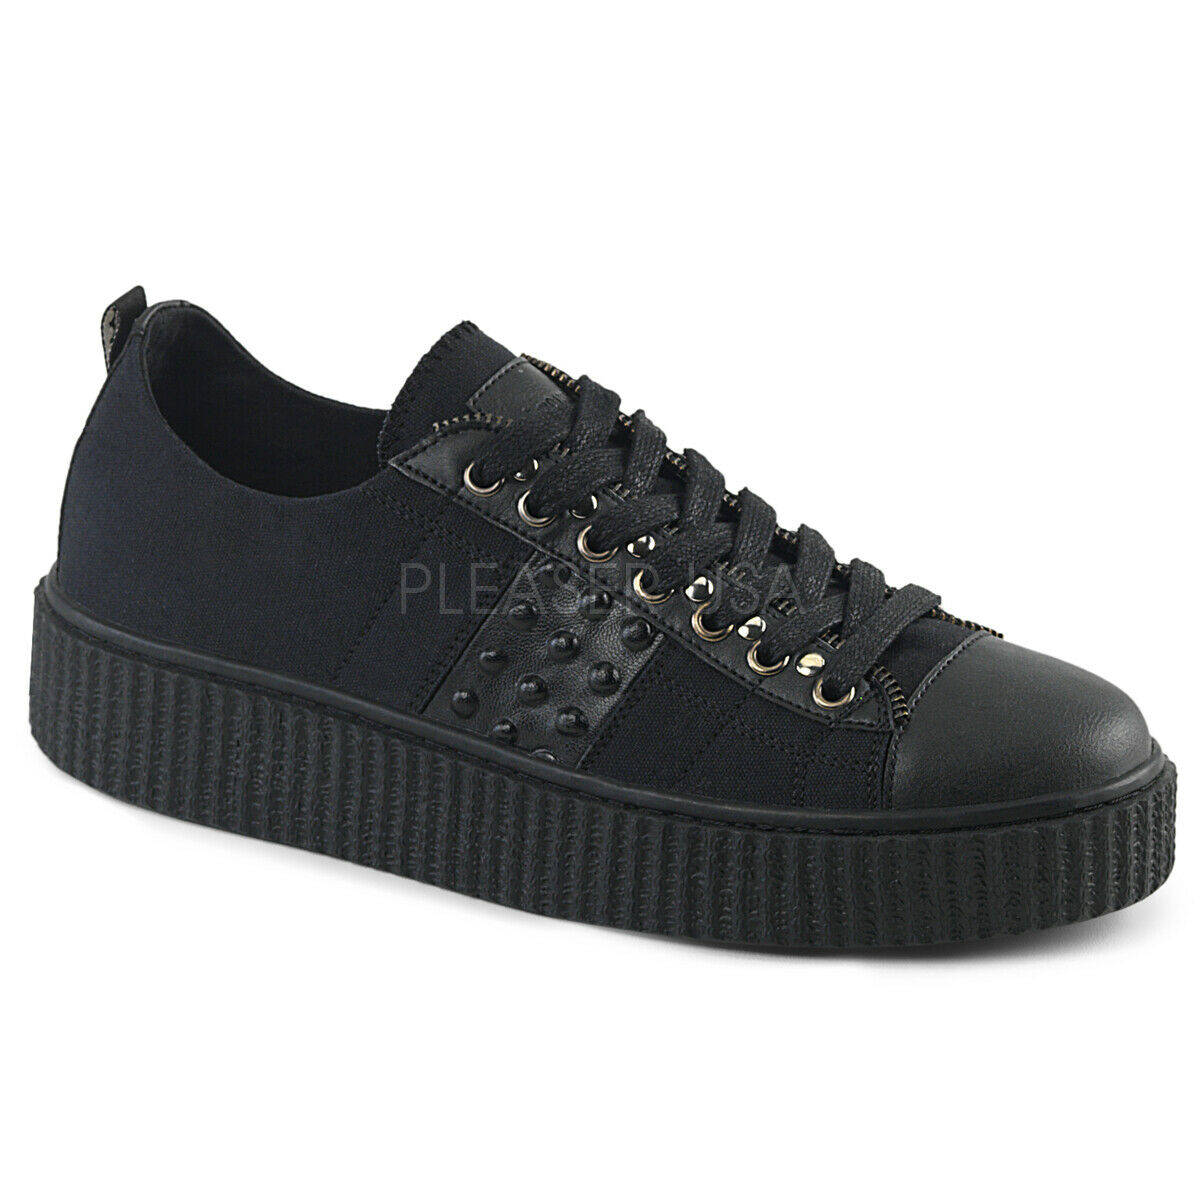 Demonia 1.5  Black Canvas Studded Zip Trim Low Top Creeper Sneakers shoes 4-13